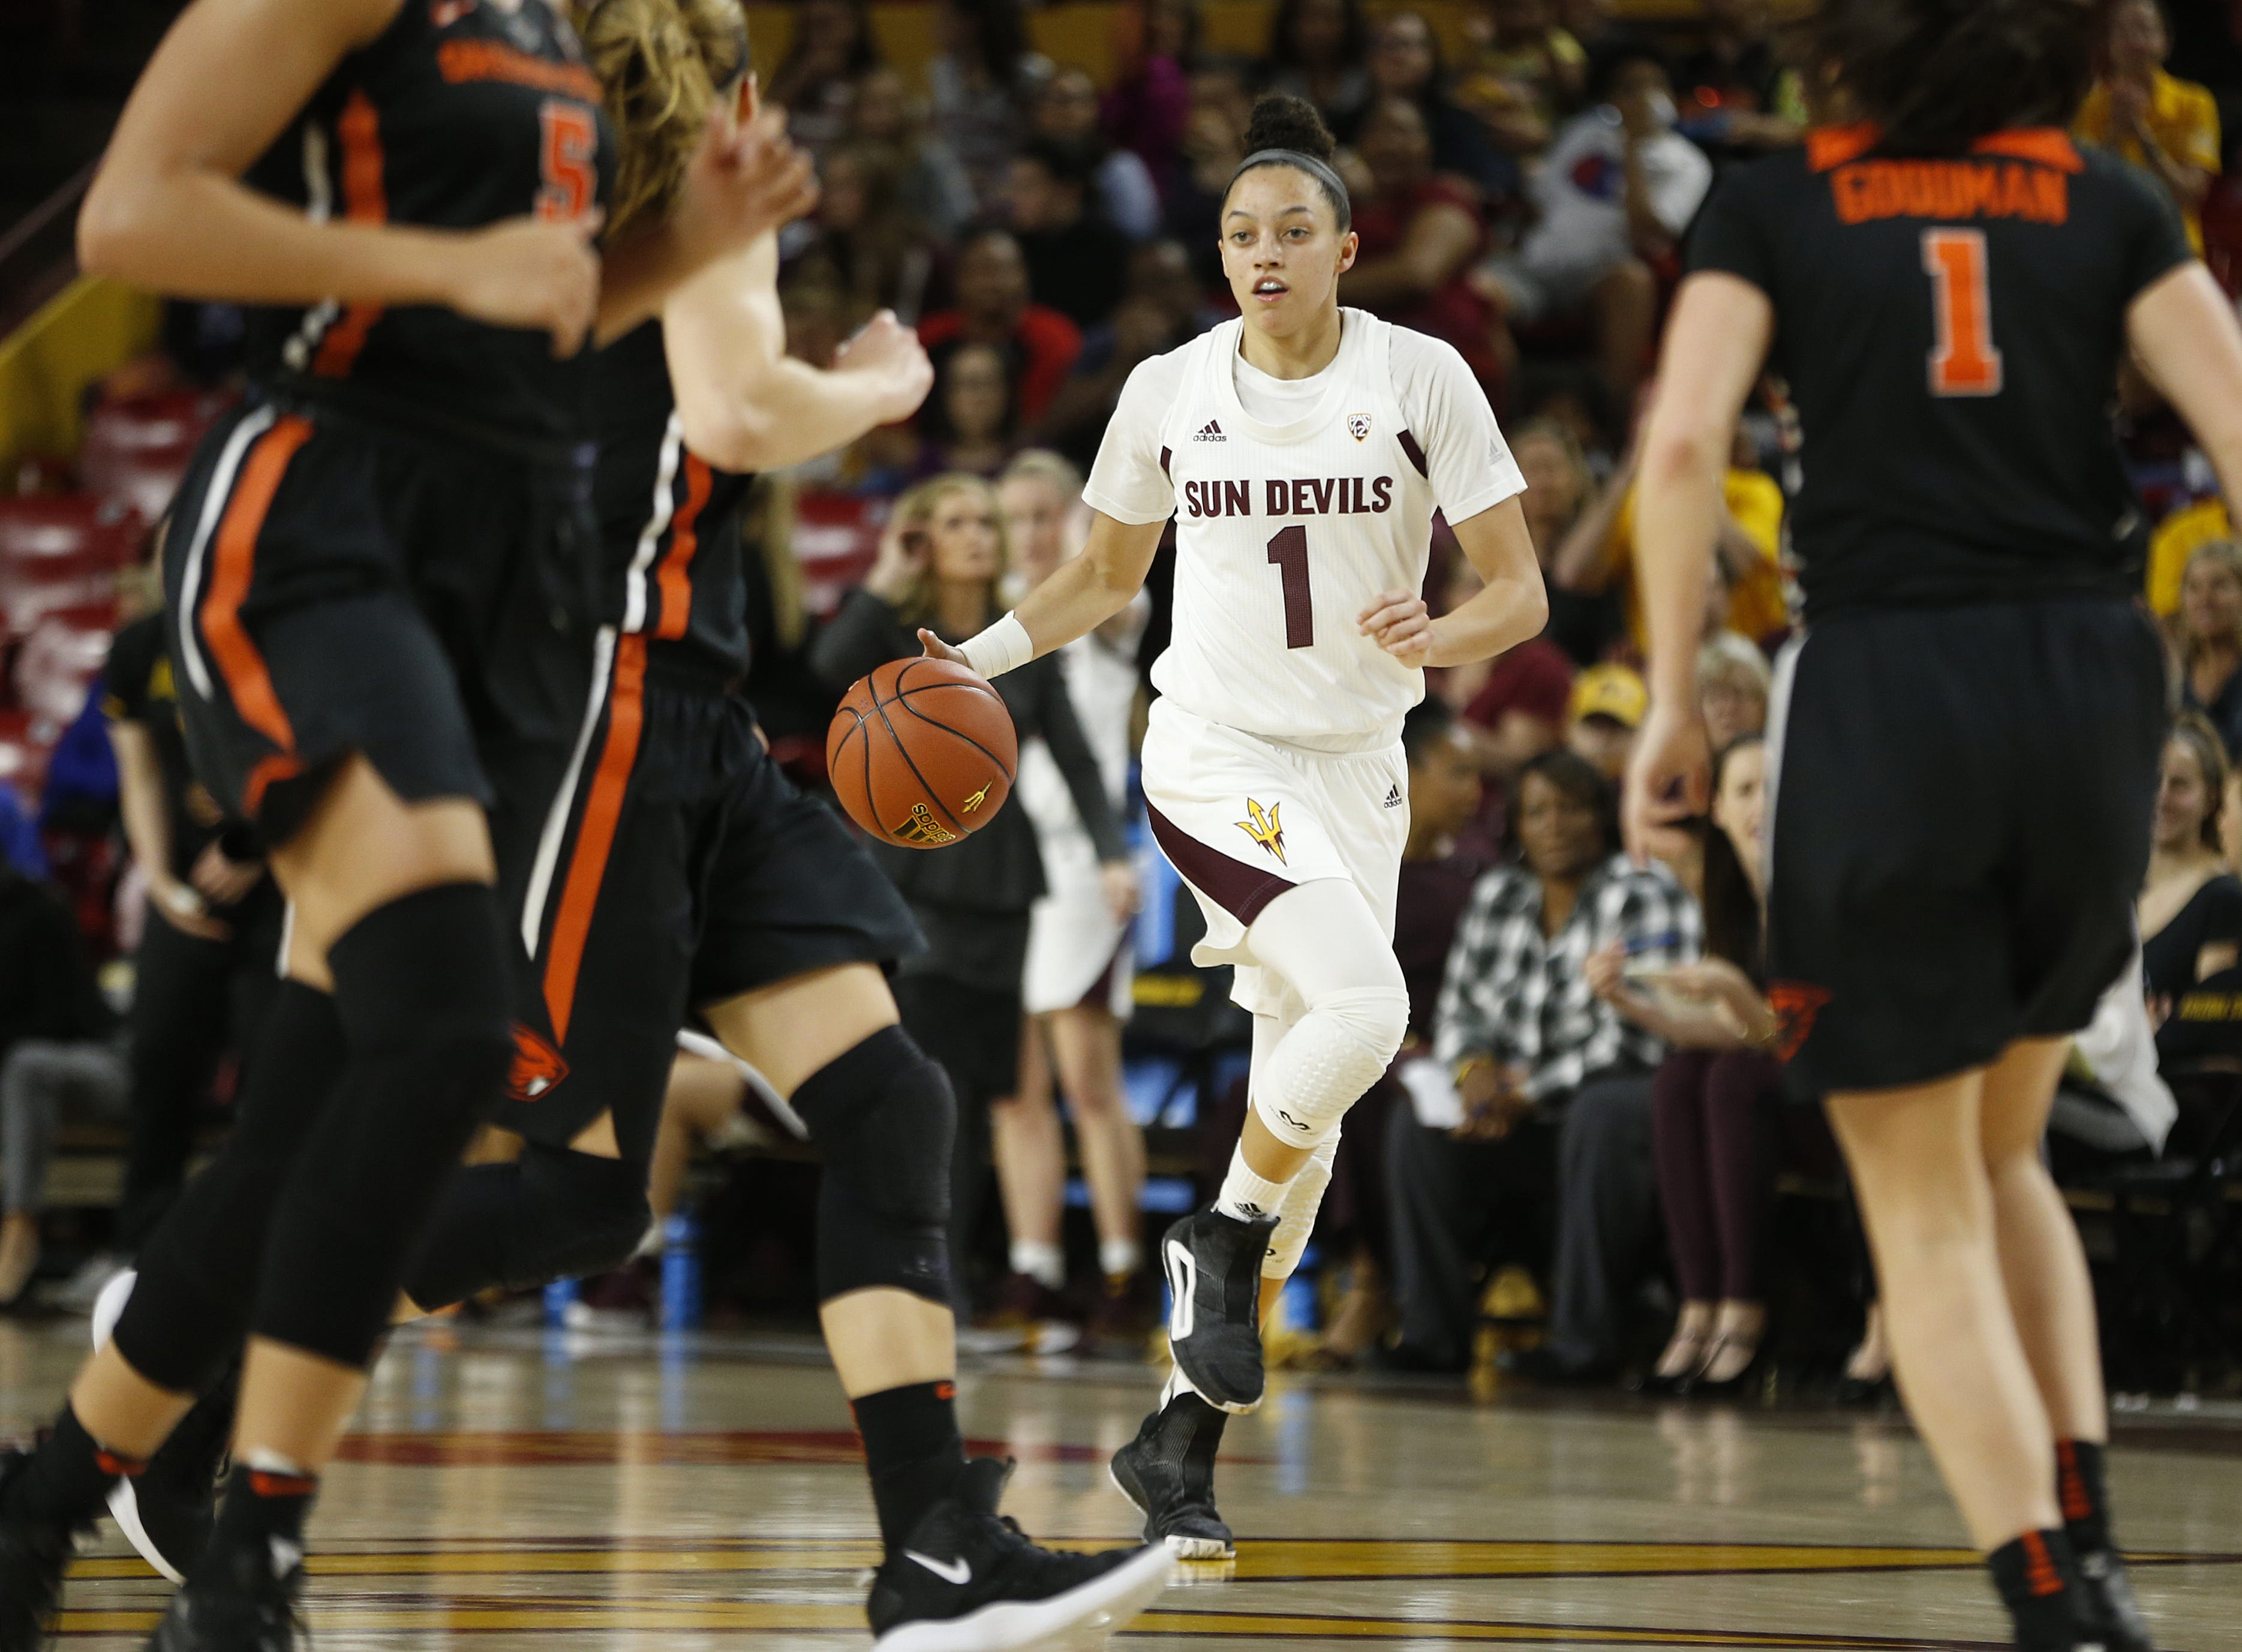 ASU's Reili Richardson (1) dribbles up the court against Oregon State's Aleah Goodman (1) during the first half at Wells Fargo Arena in Tempe, Ariz. on March 1, 2019.